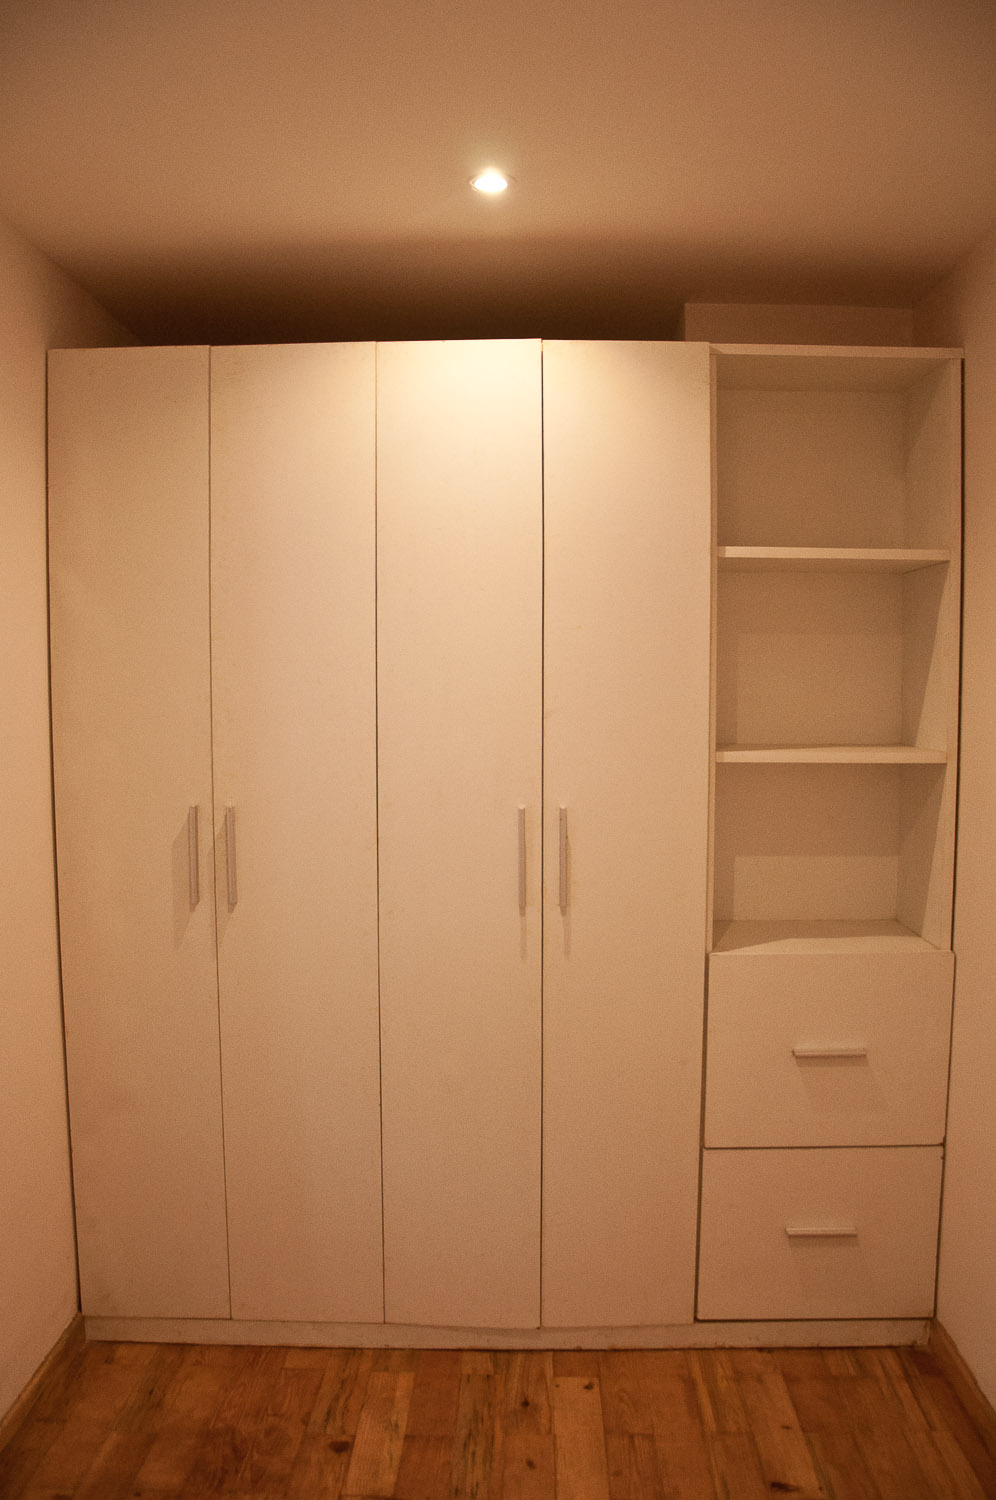 Cupboard to store your clothes, bed sheets or towels.